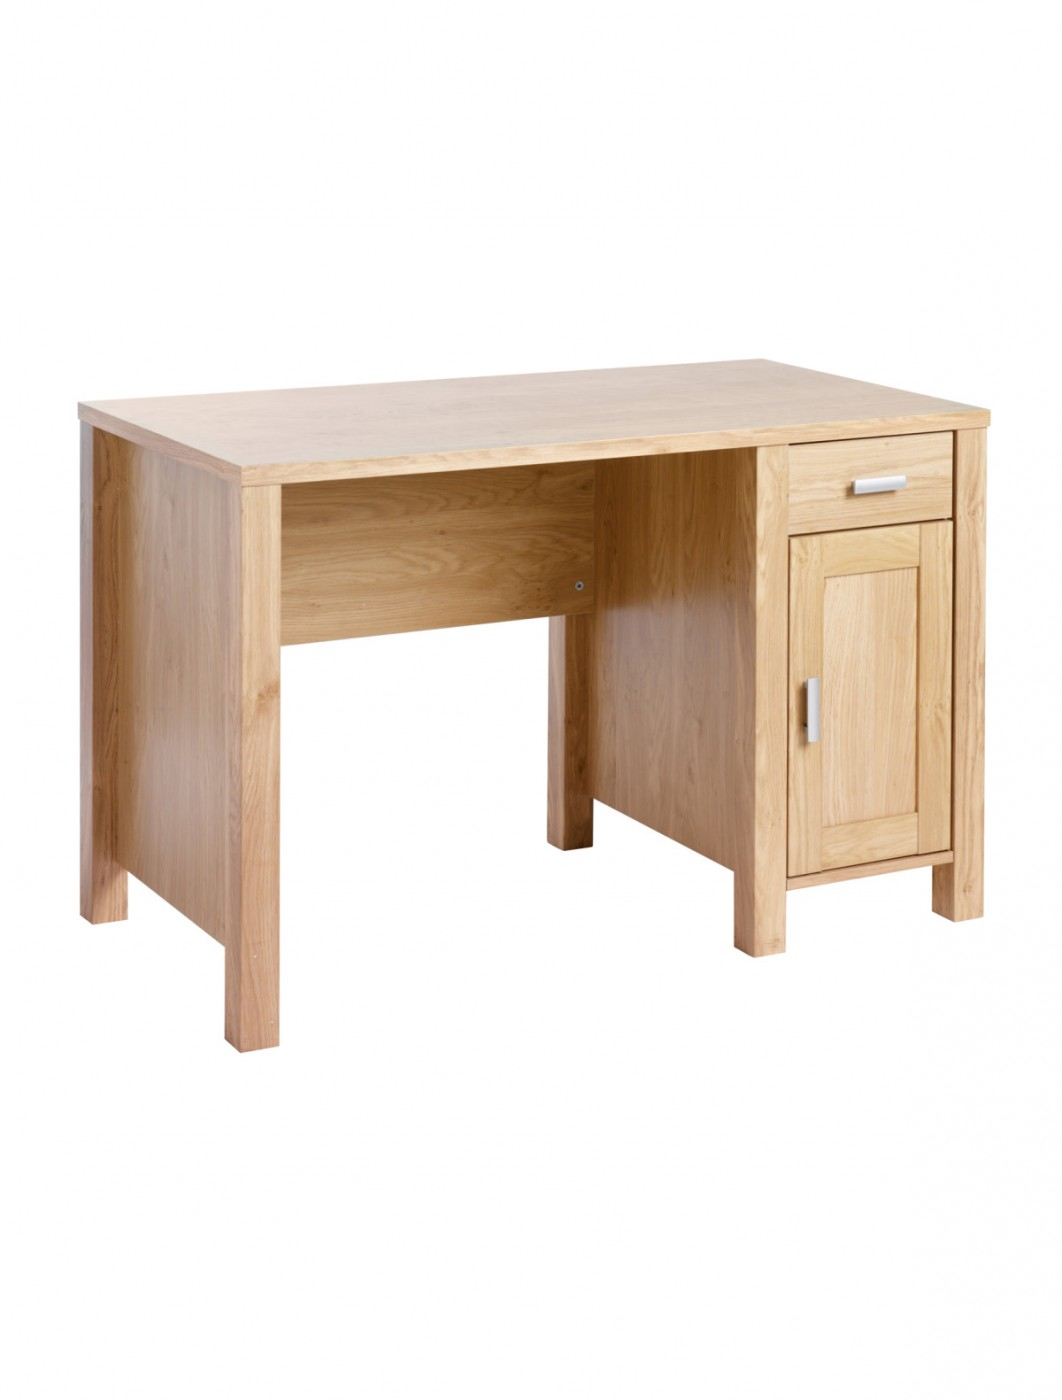 Home Office Desk Oak Effect Amazonia Home Workstation AMAWS by Dams